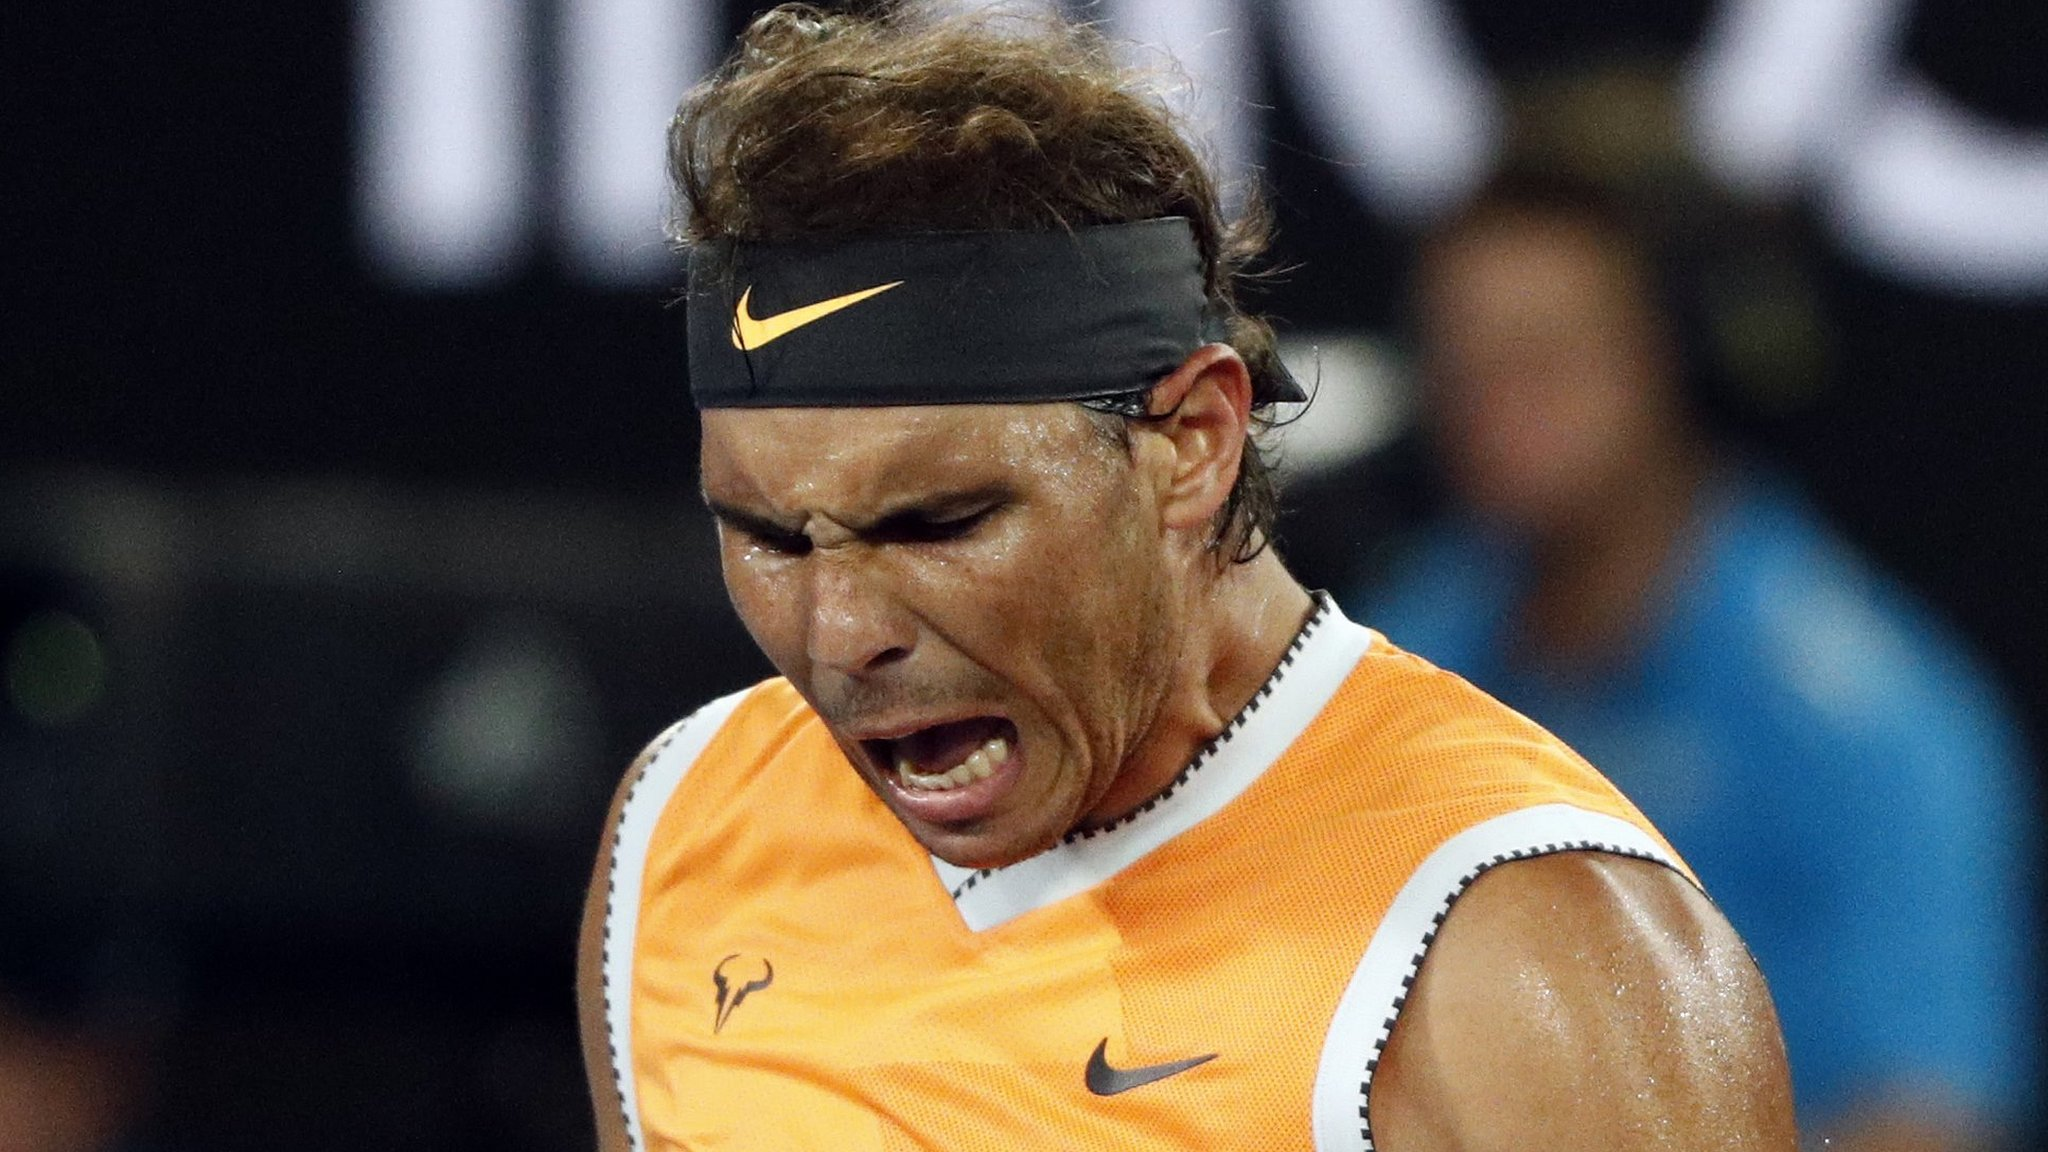 Australian Open: Rafael Nadal beats Matthew Ebden to reach third round